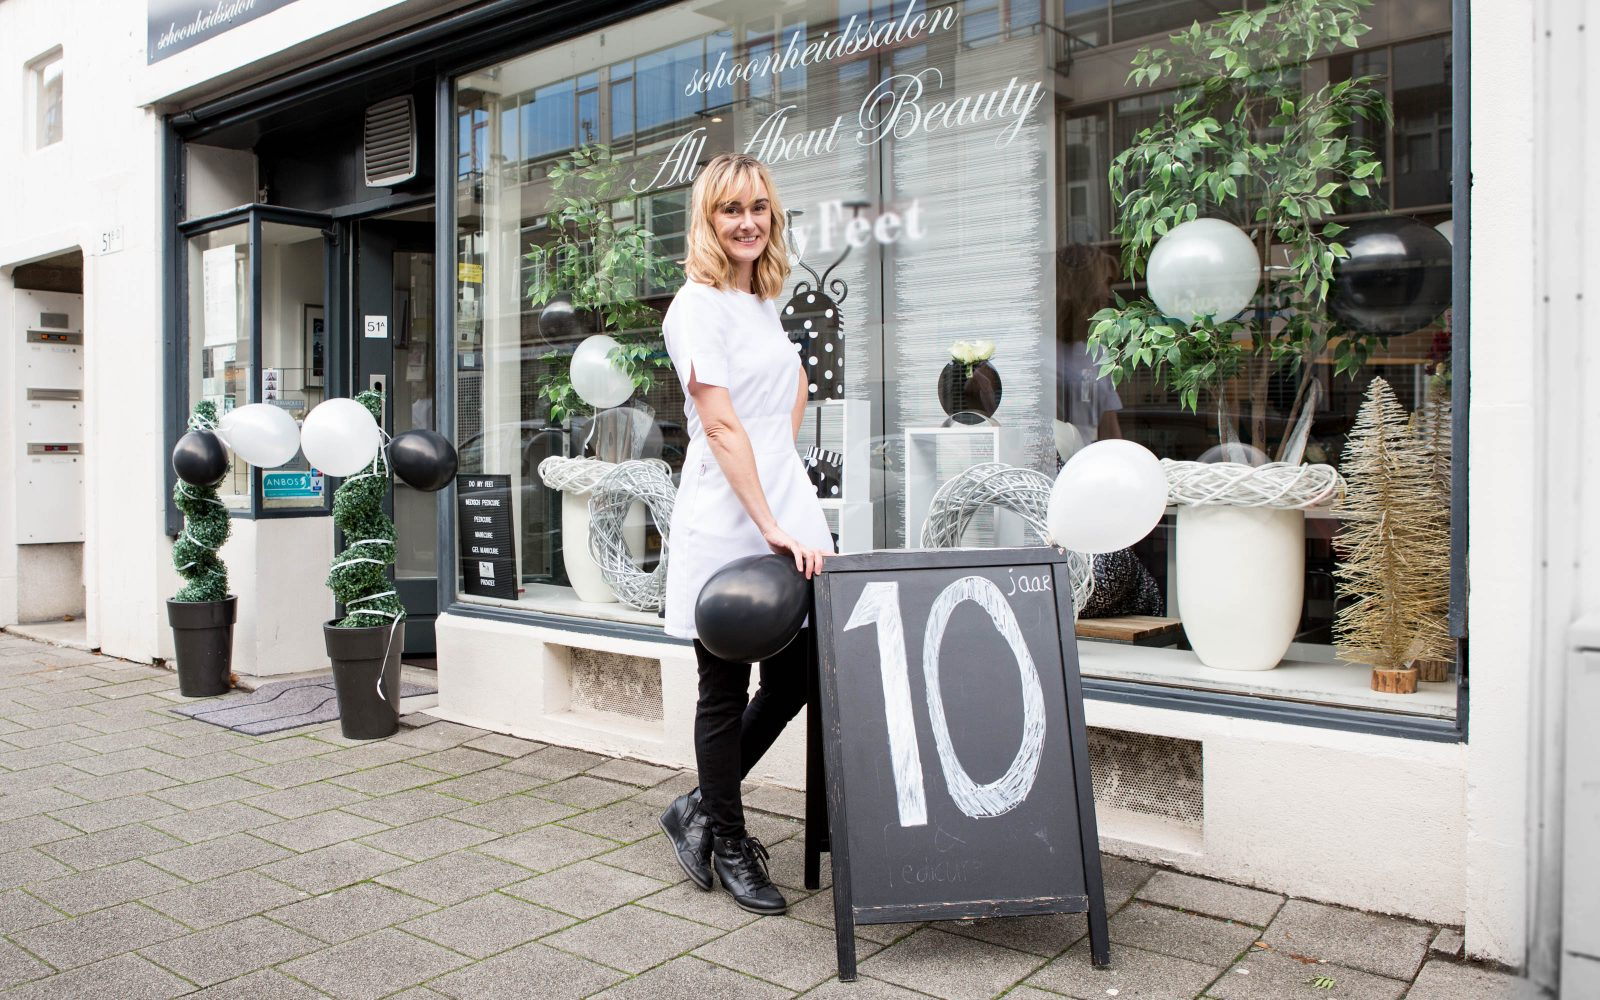 Sarah van All About Beauty in het Hoogkwartier. Foto door Emiel Meijer